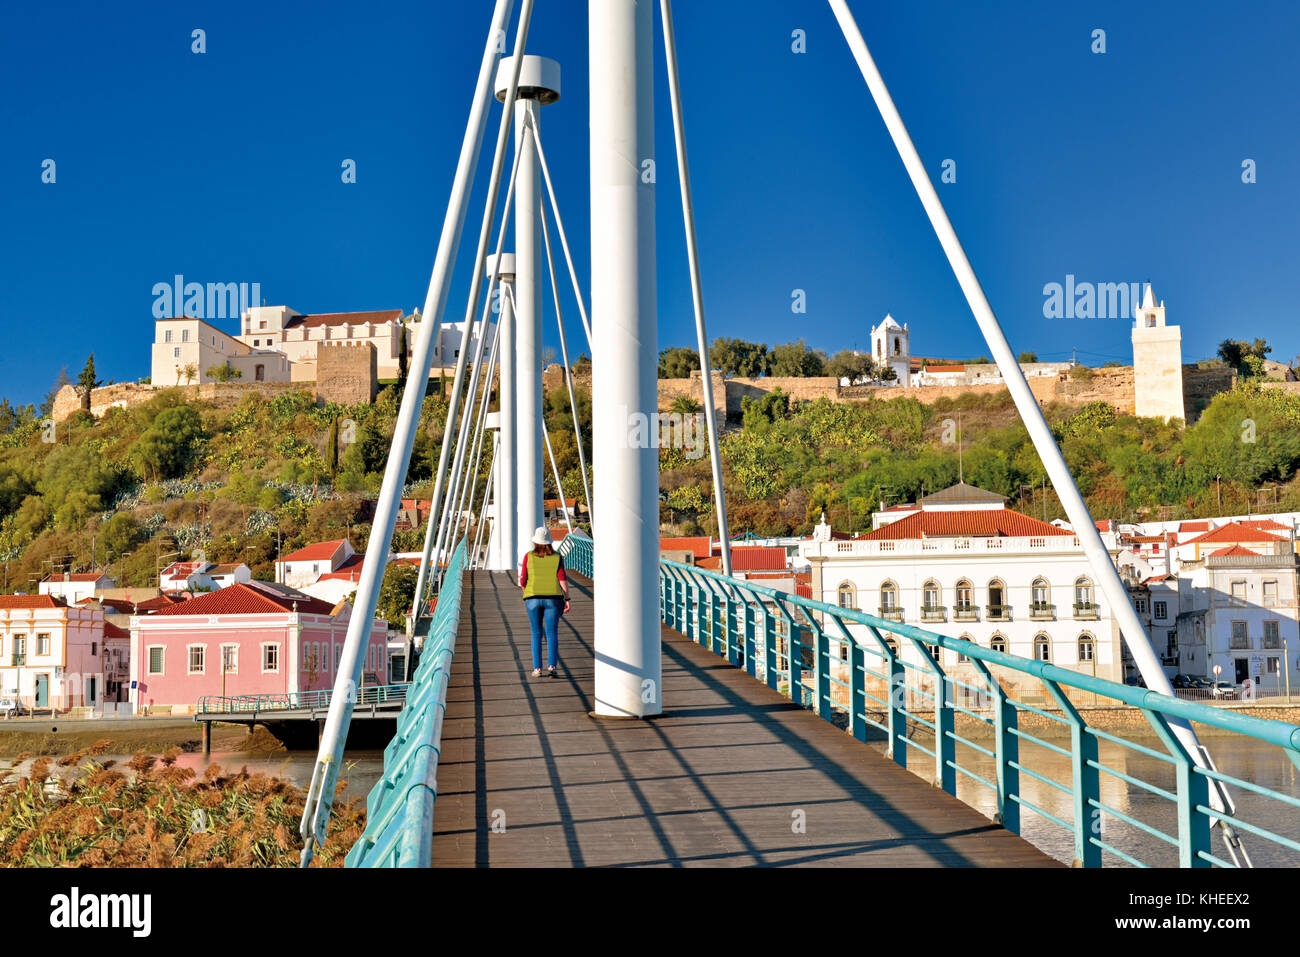 Woman crossing modern pedestrian bridge towards historic center of Alcacer do Sal, Alentejo, Portugal - Stock Image